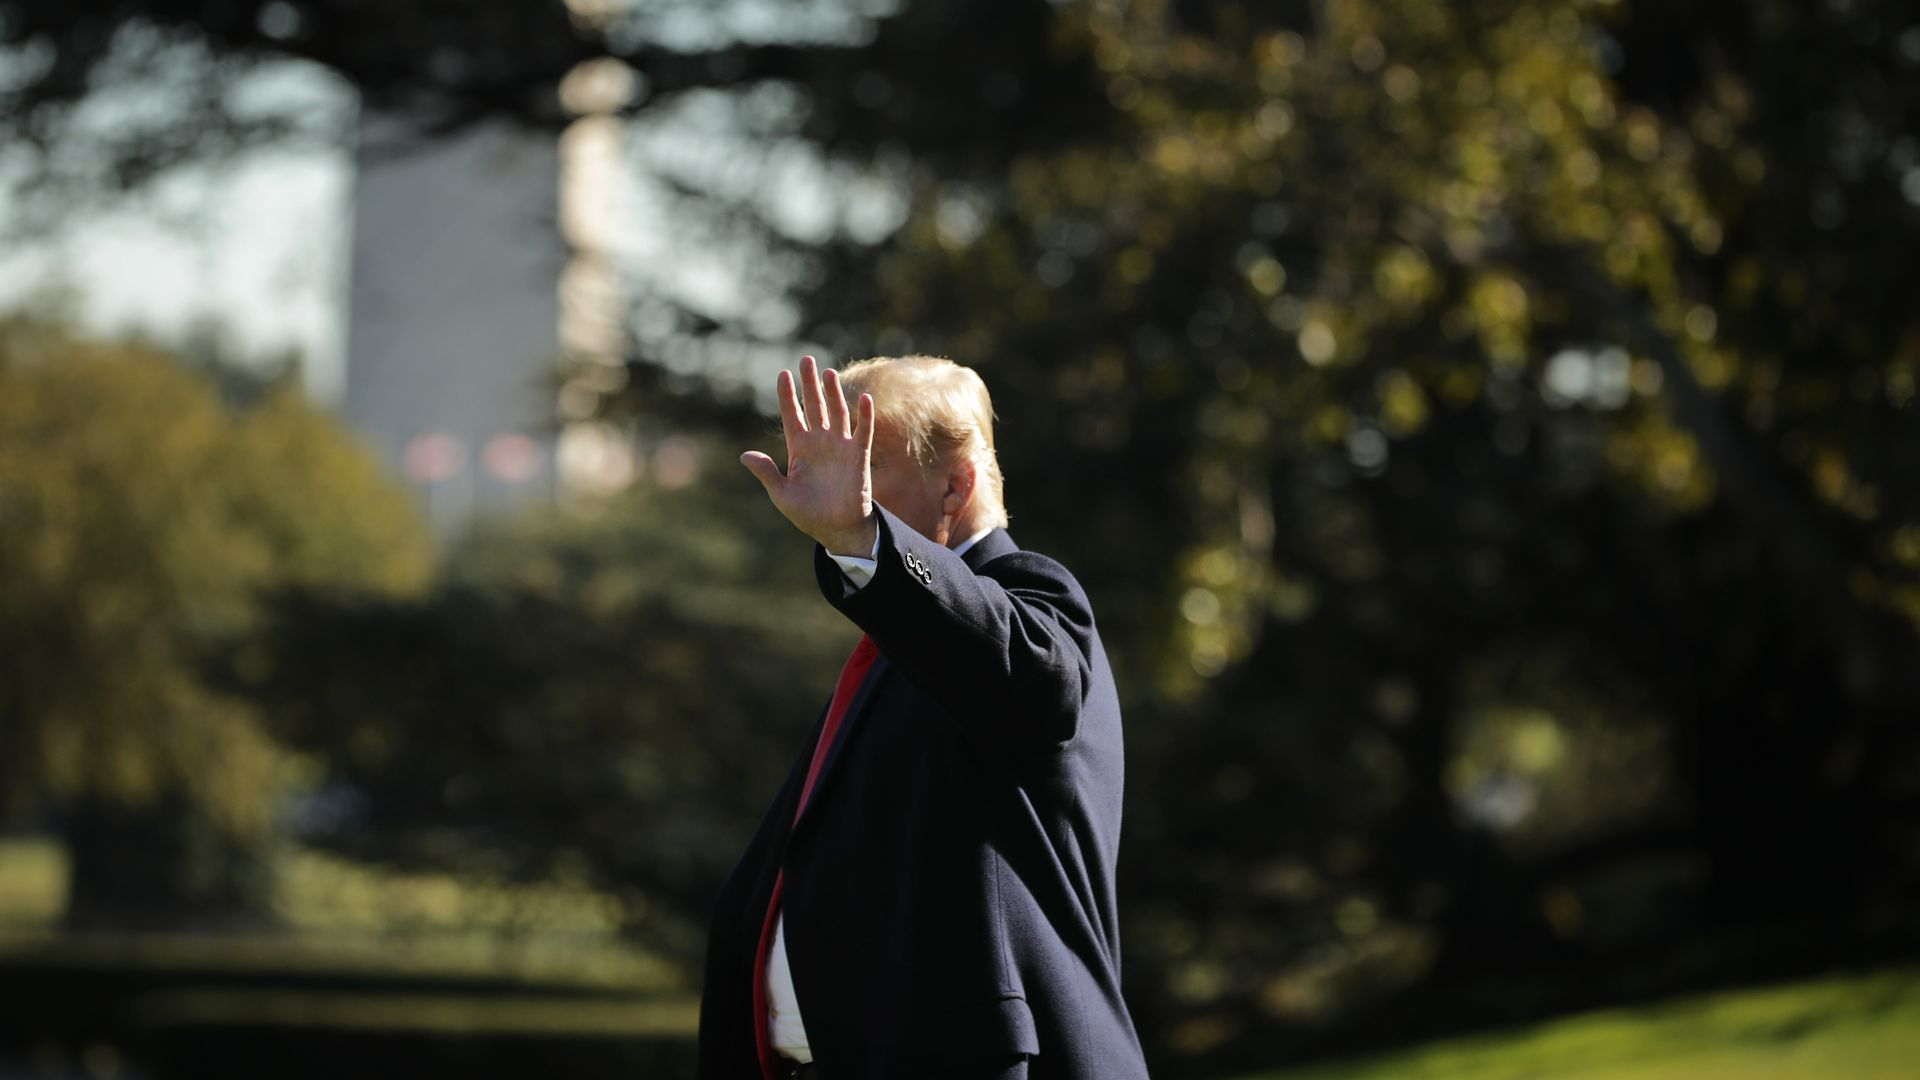 In this image, Trump waves at the camera while walking, which blocks out his face. The Washington Monument can be seen behind him.